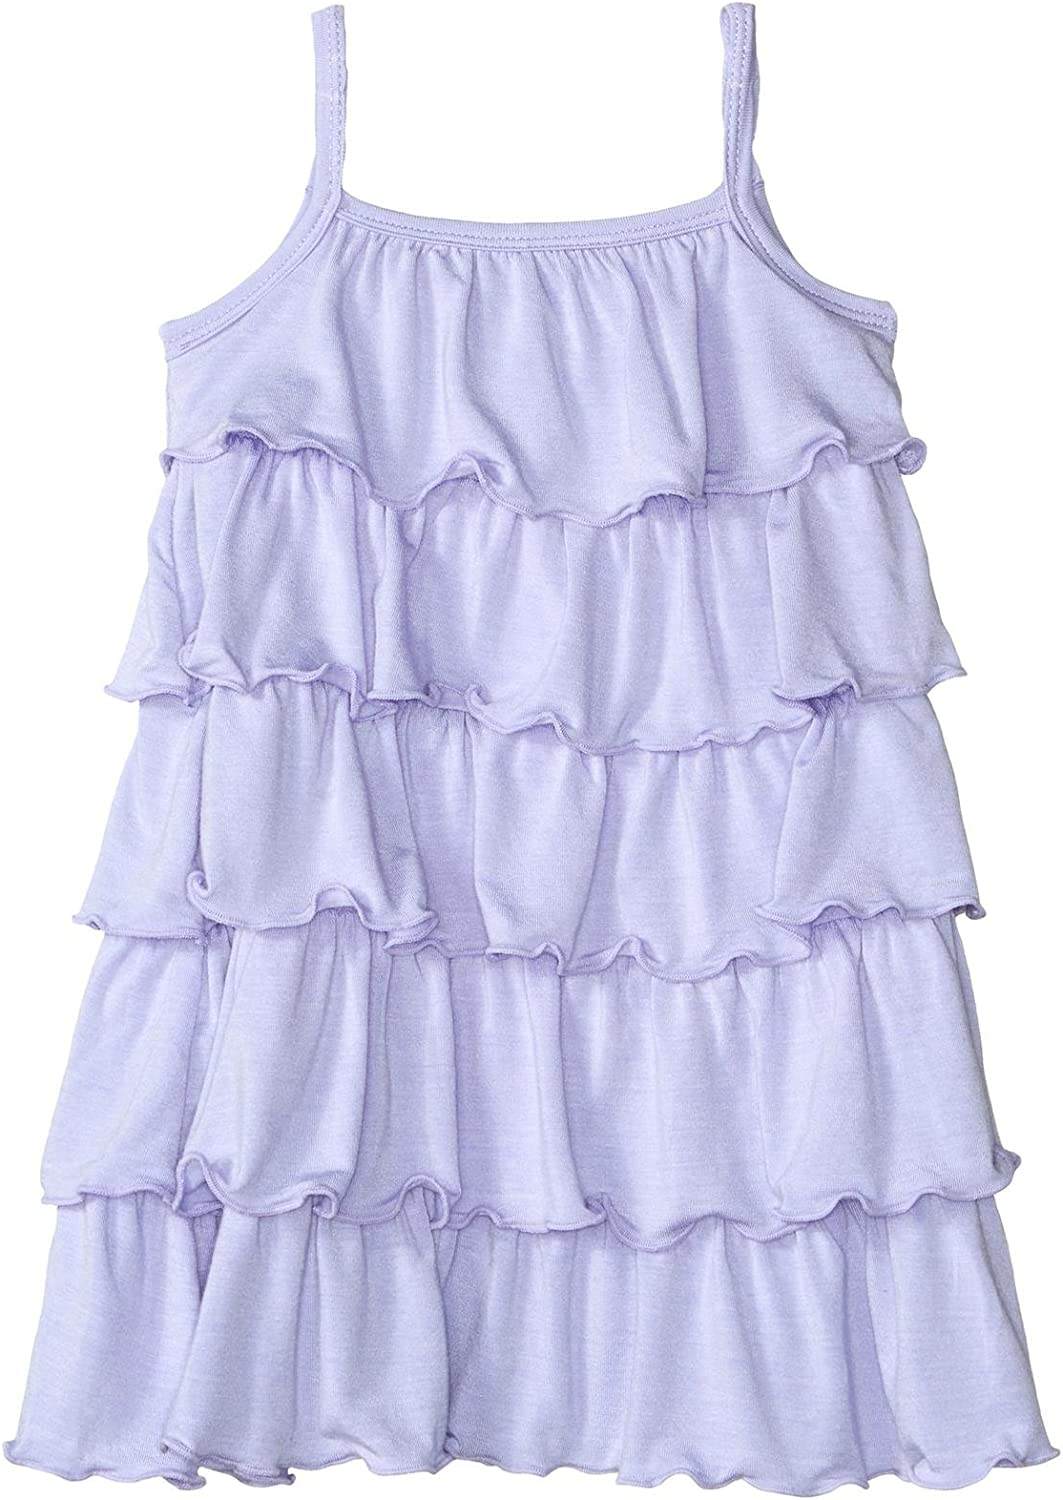 KicKee Pants Baby Girls' Solid Ranking TOP14 Prd-kprd04-lc Albuquerque Mall Dress Ruffle Tiered